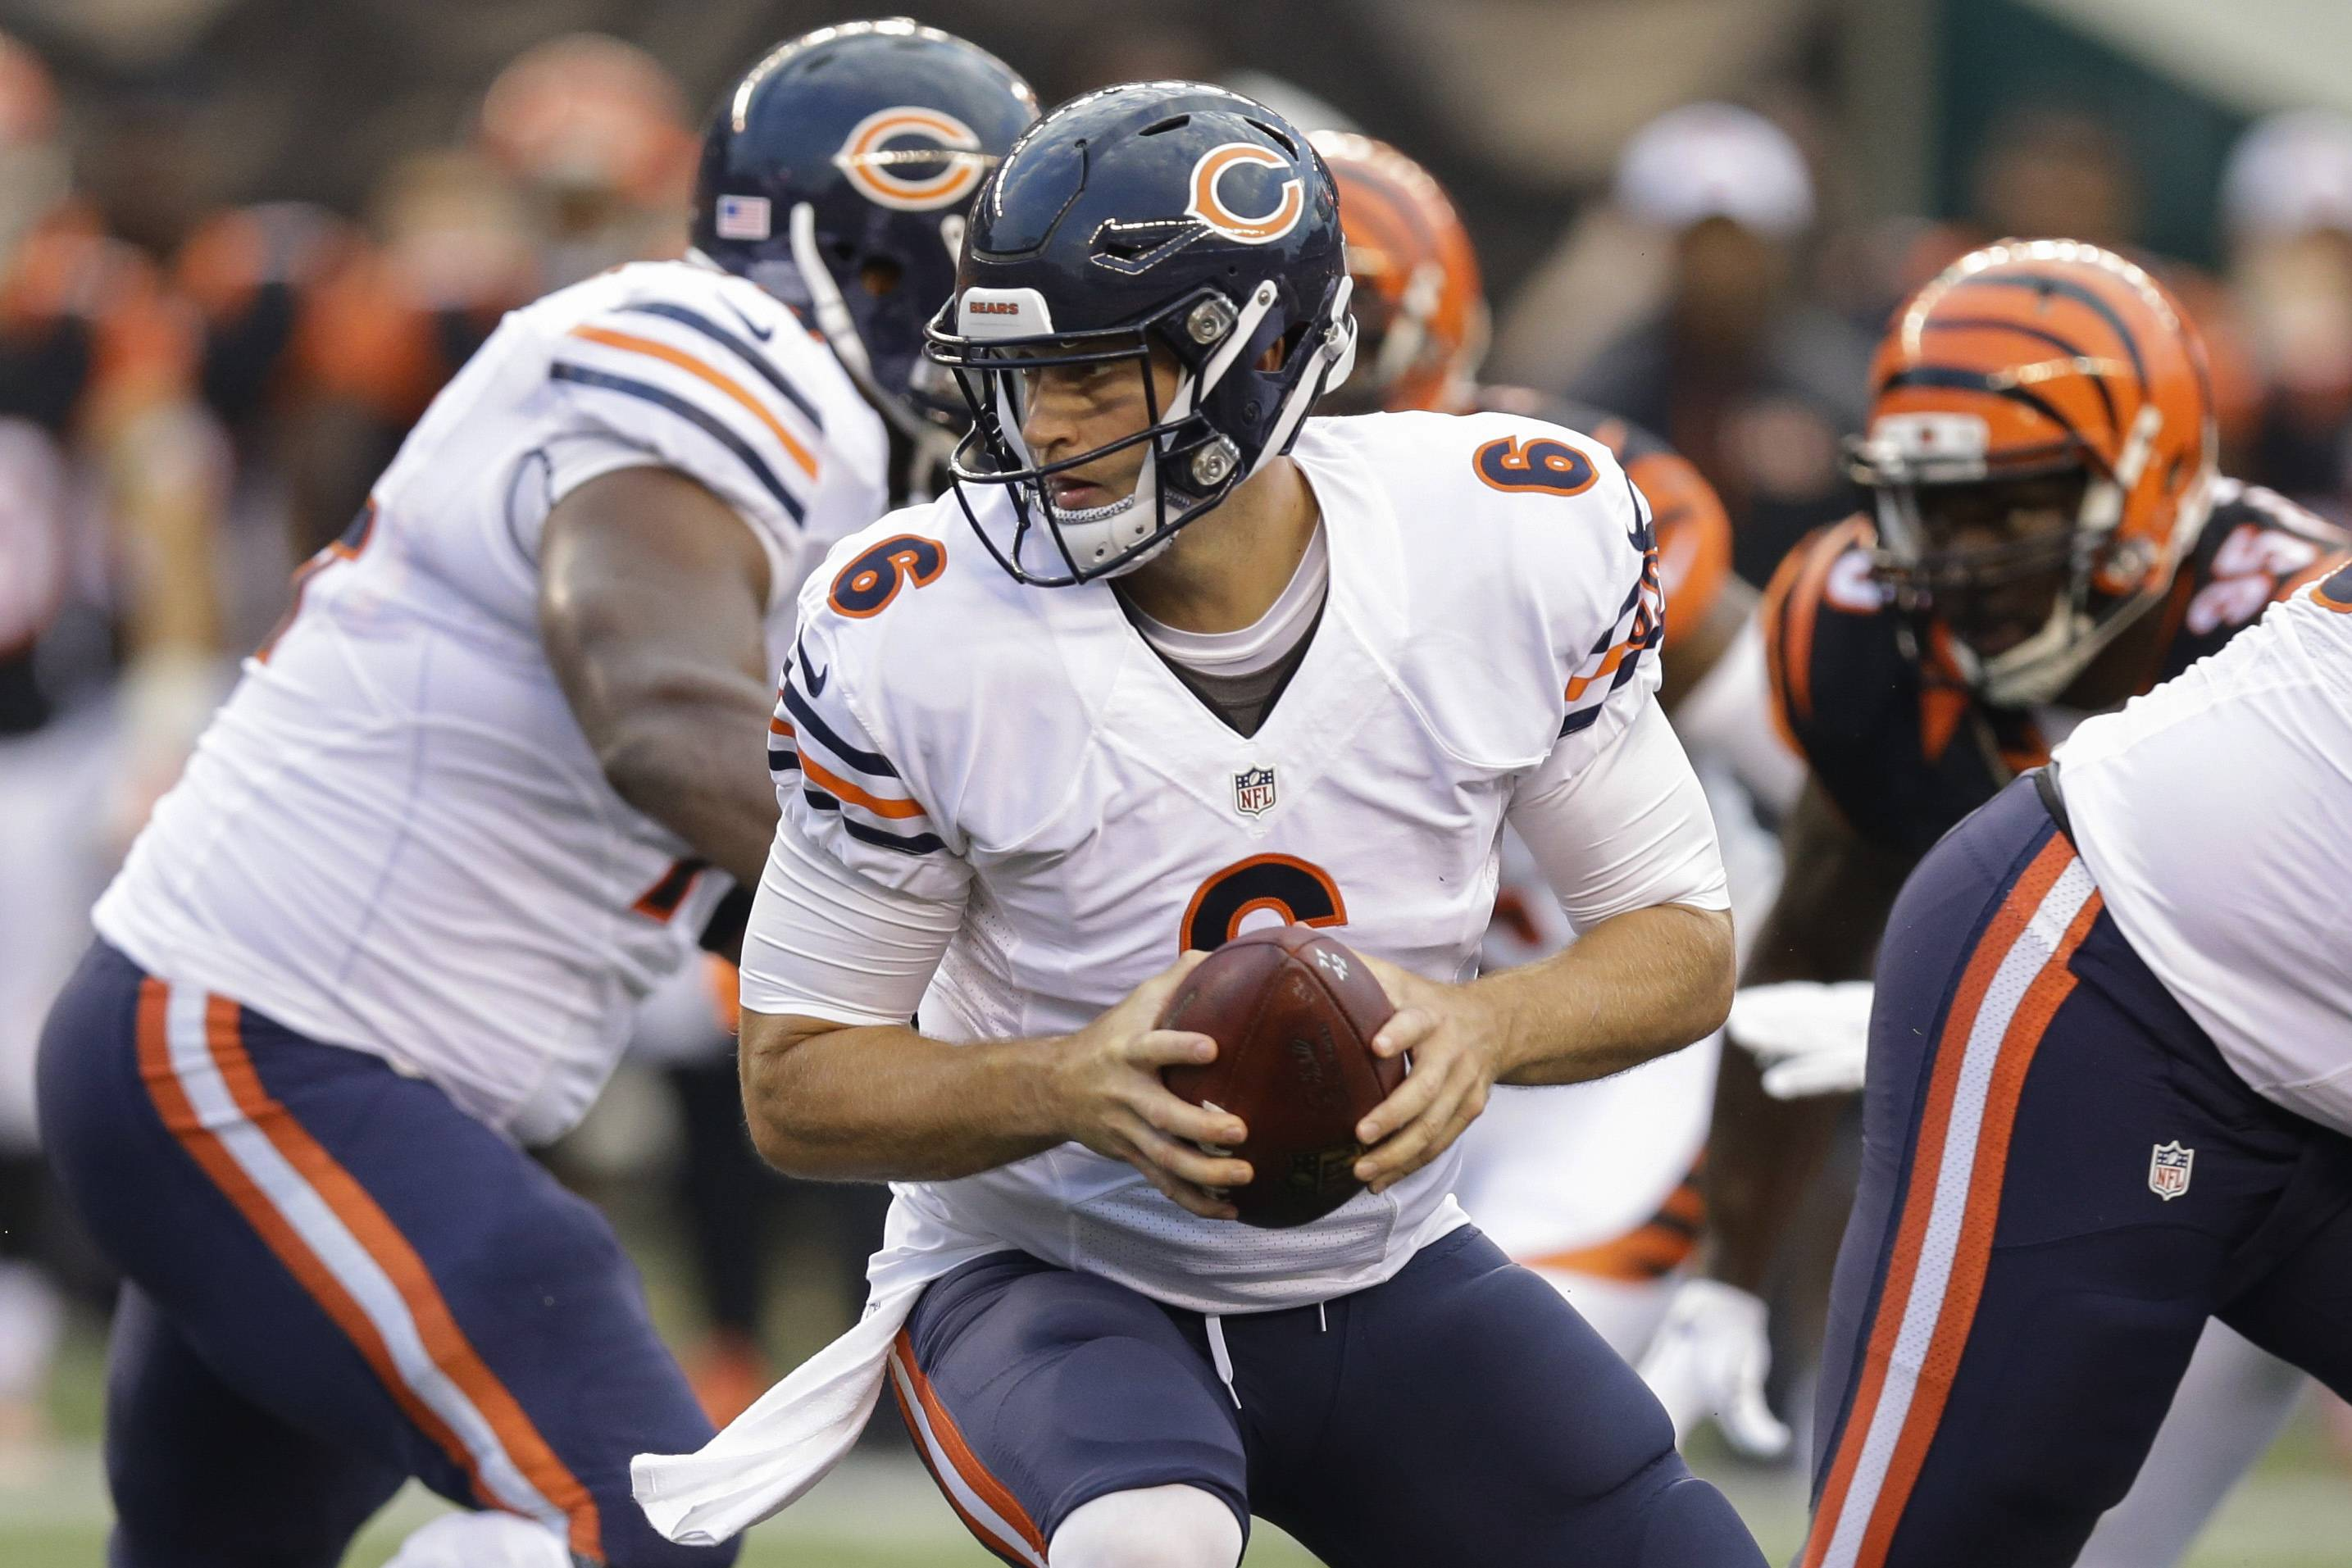 Chicago Bears quarterback Jay Cutler looks to hand off the ball during the first half of an NFL preseason football game against the Cincinnati Bengals, Saturday, Aug. 29, 2015, in Cincinnati.